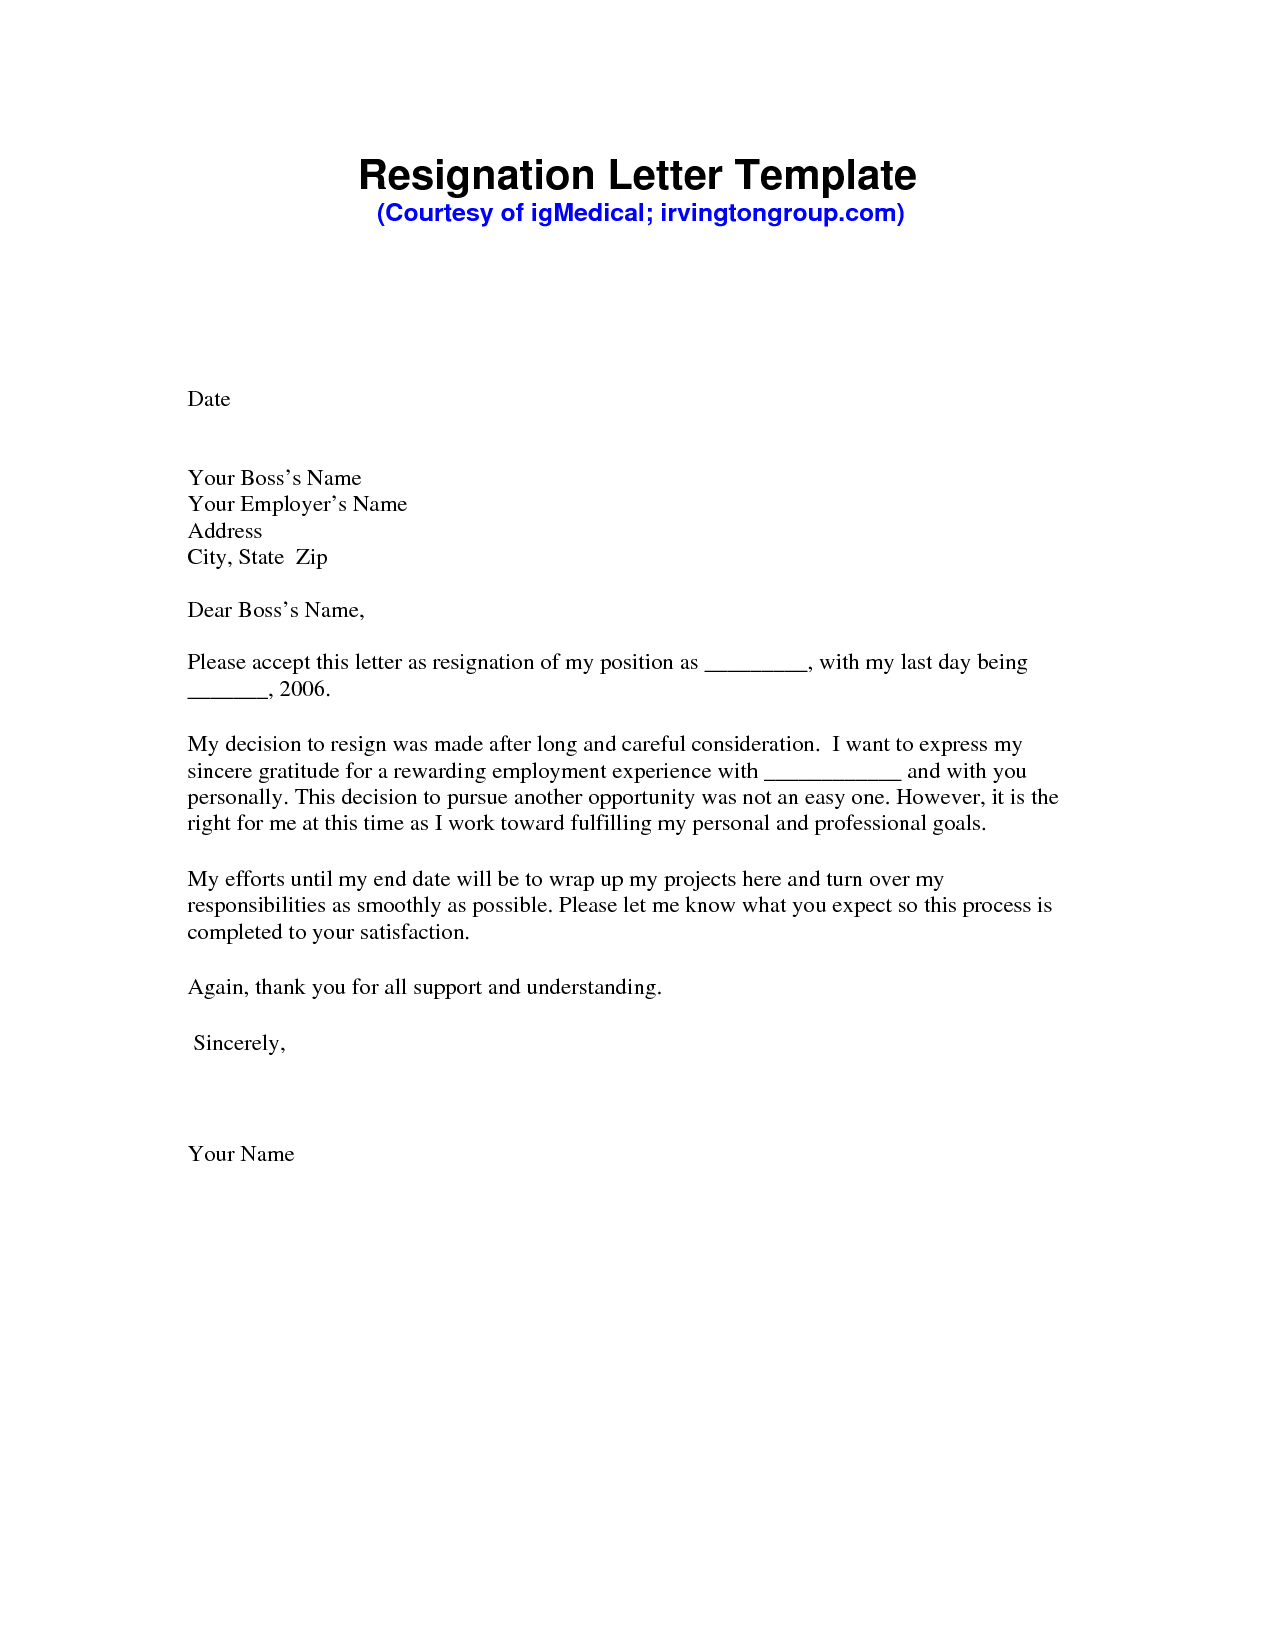 Resignation Letter Template Free - Resignation Letter Sample Pdf Resignation Letter